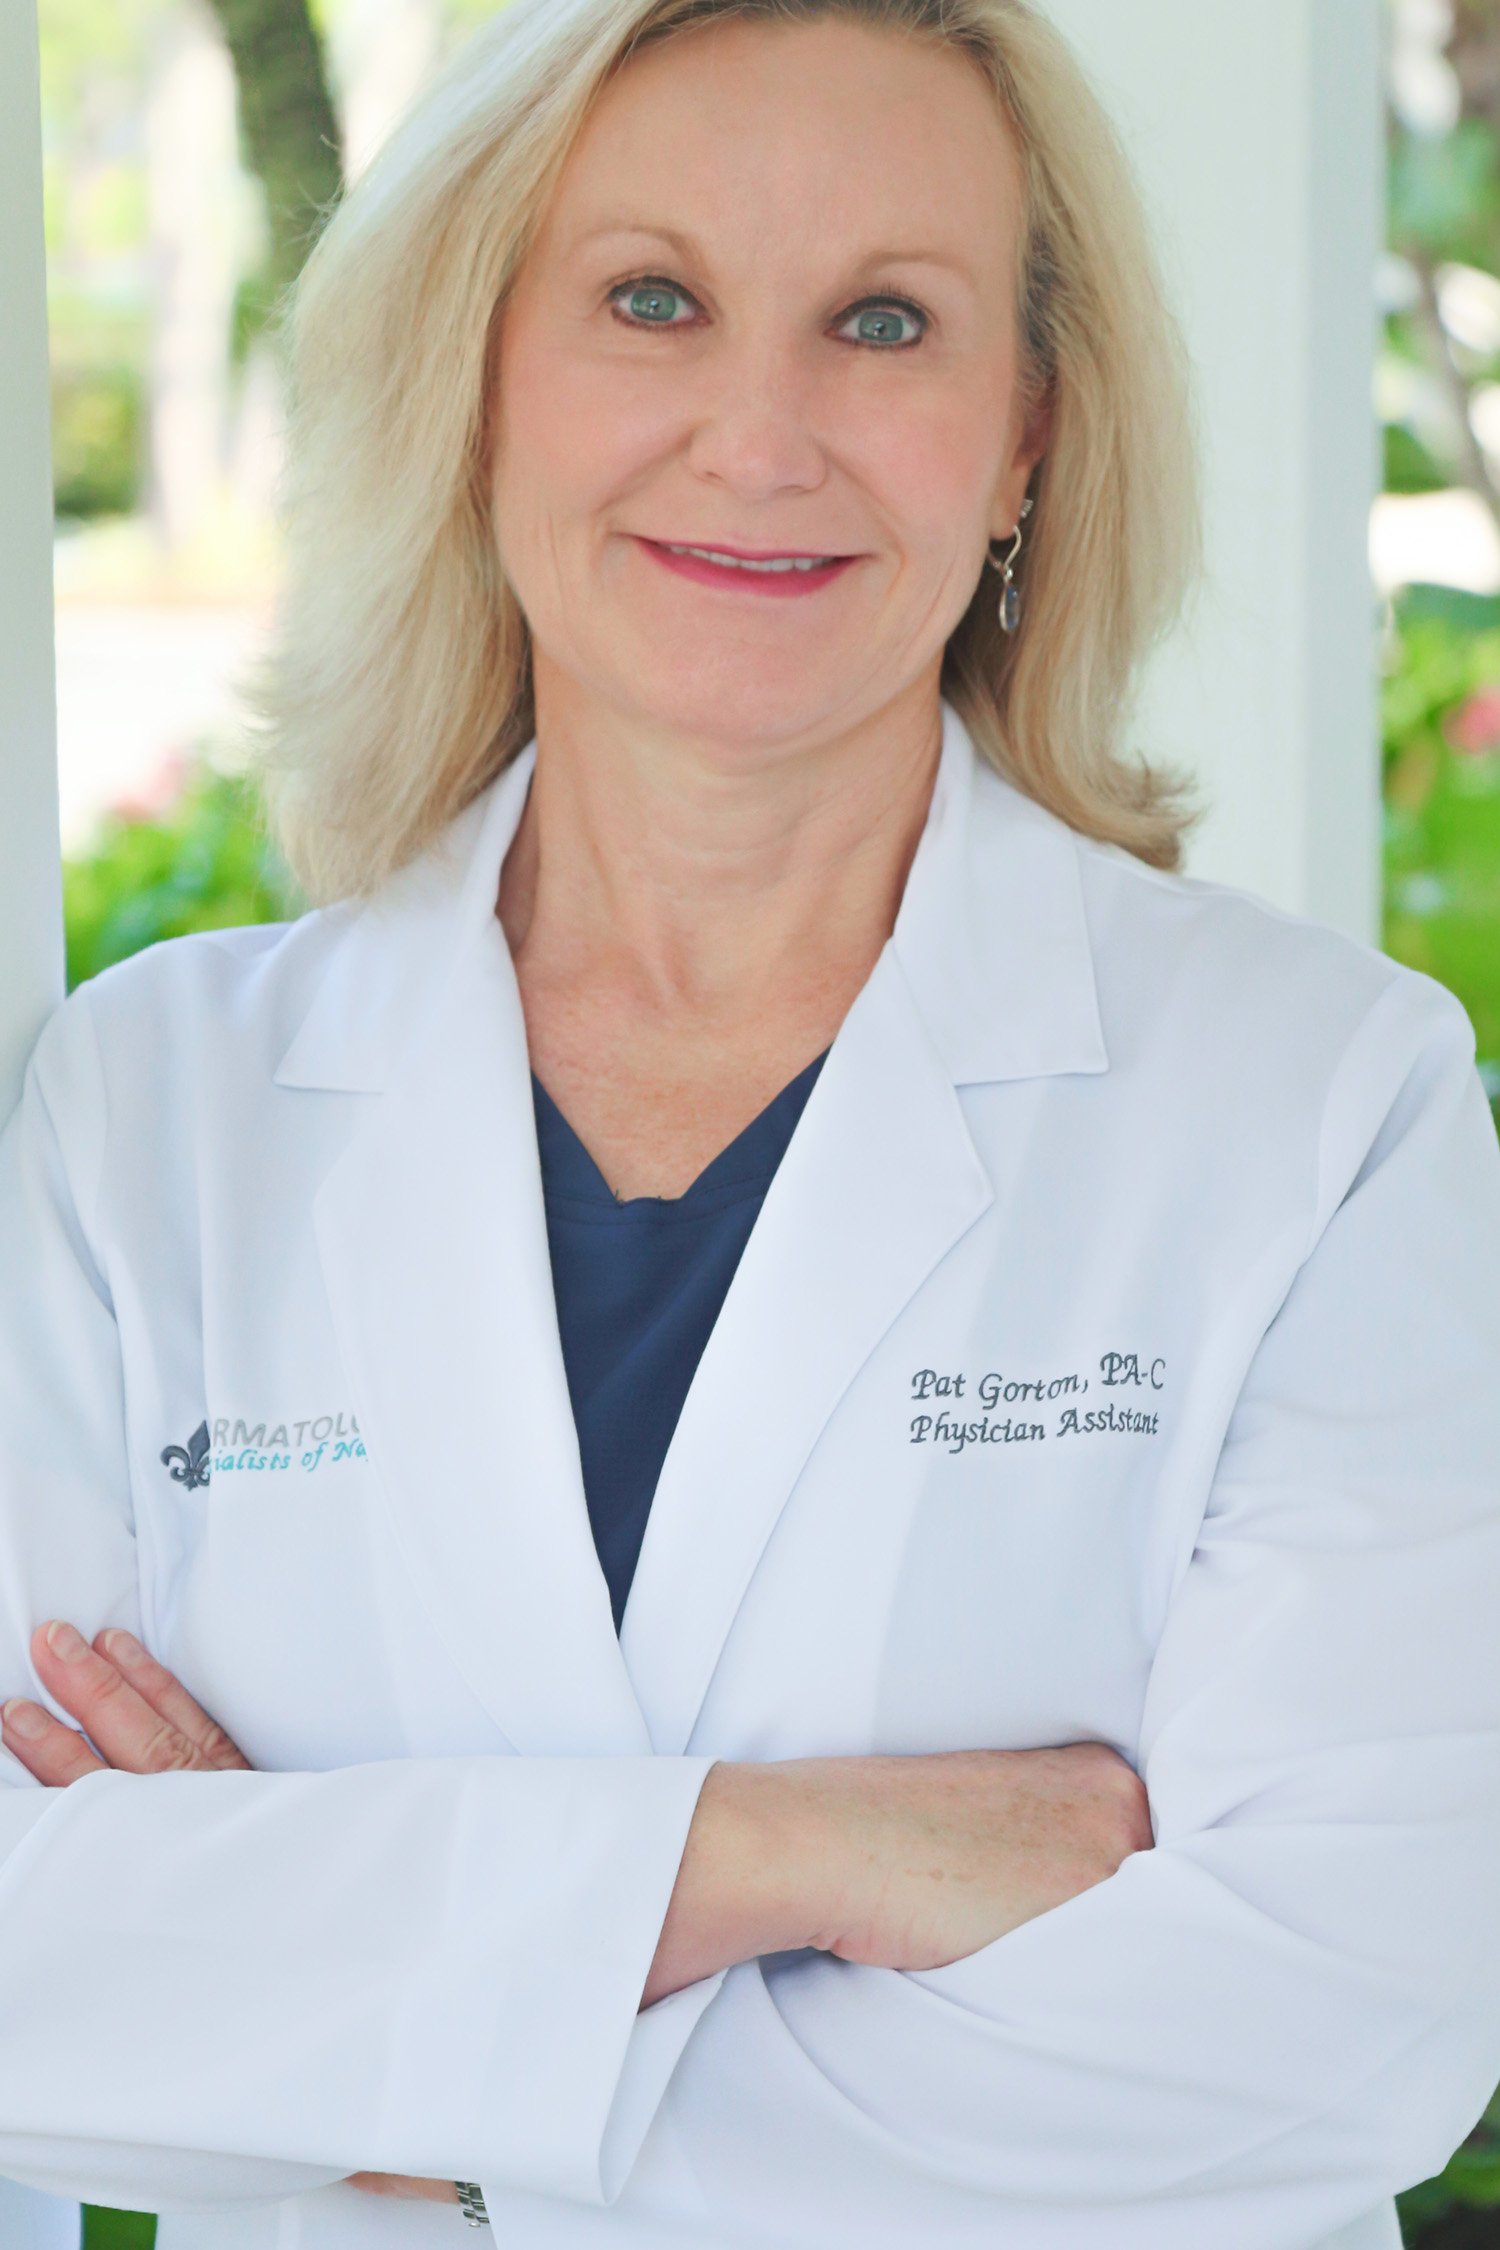 ece023131ac About Us - Dermatology Specialists of Naples